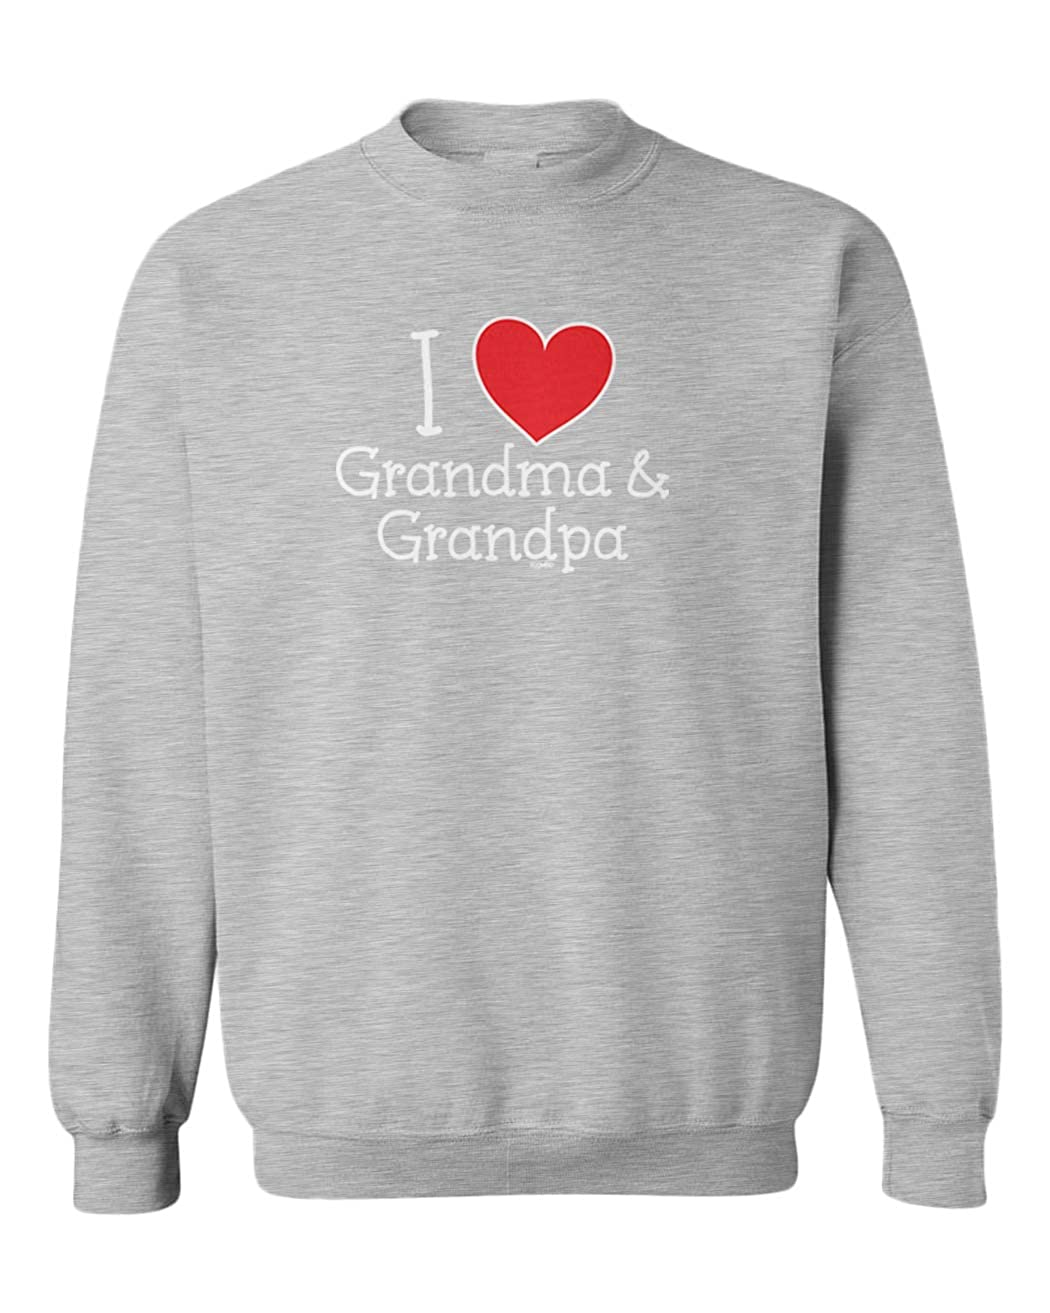 Love Youth Fleece Crewneck Sweater I Heart My Grandma /& Grandpa